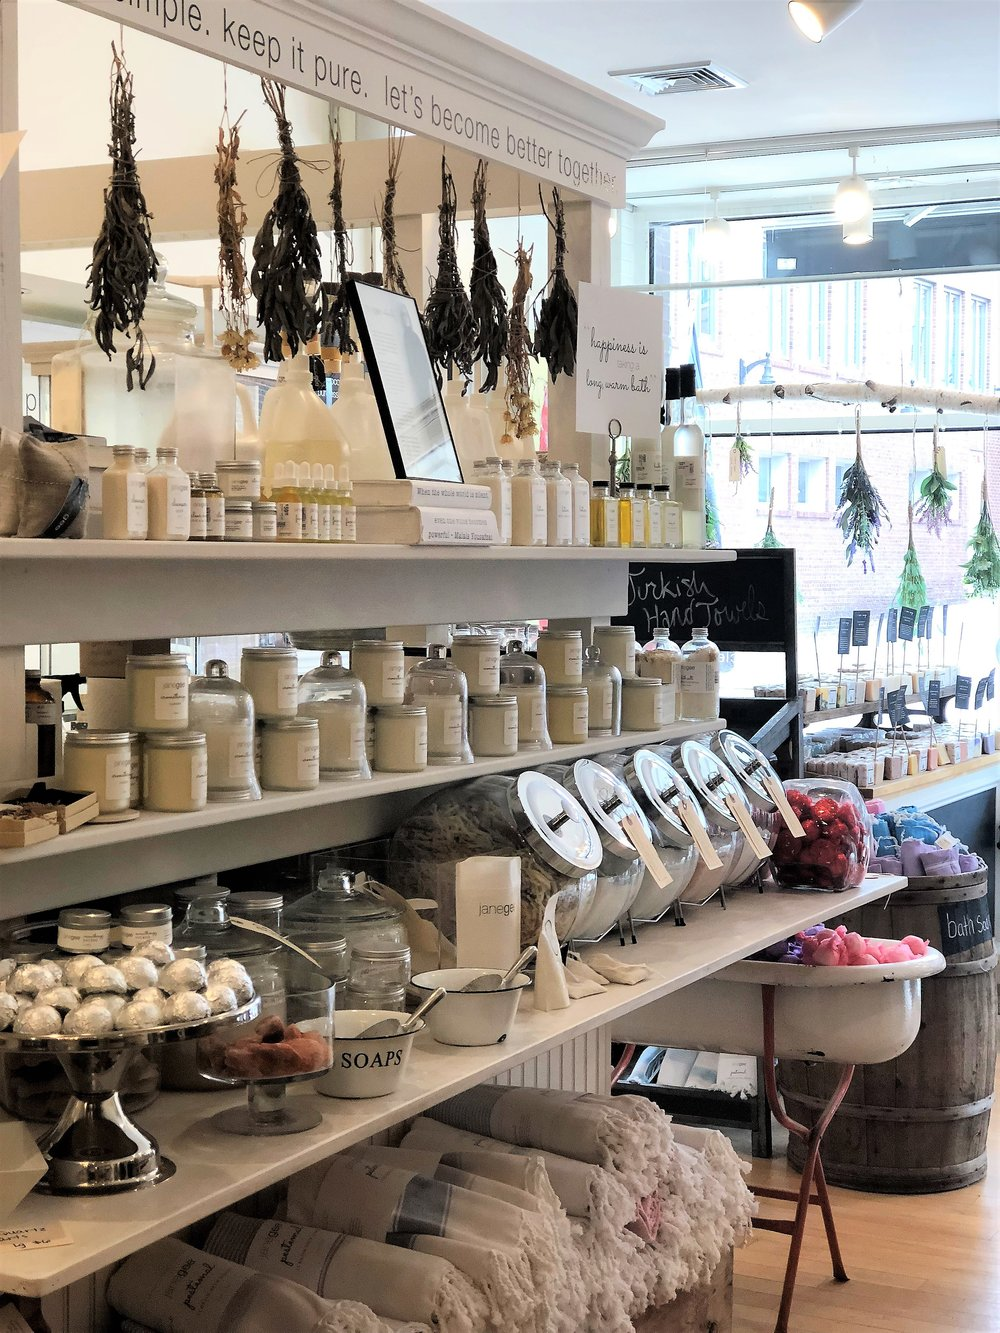 JaneGee  promotes clean living, carrying clean products ranging from skincare to hair care. They also had the cutest display of baby gifts! If you are into clean products, this would be the place to stop in.